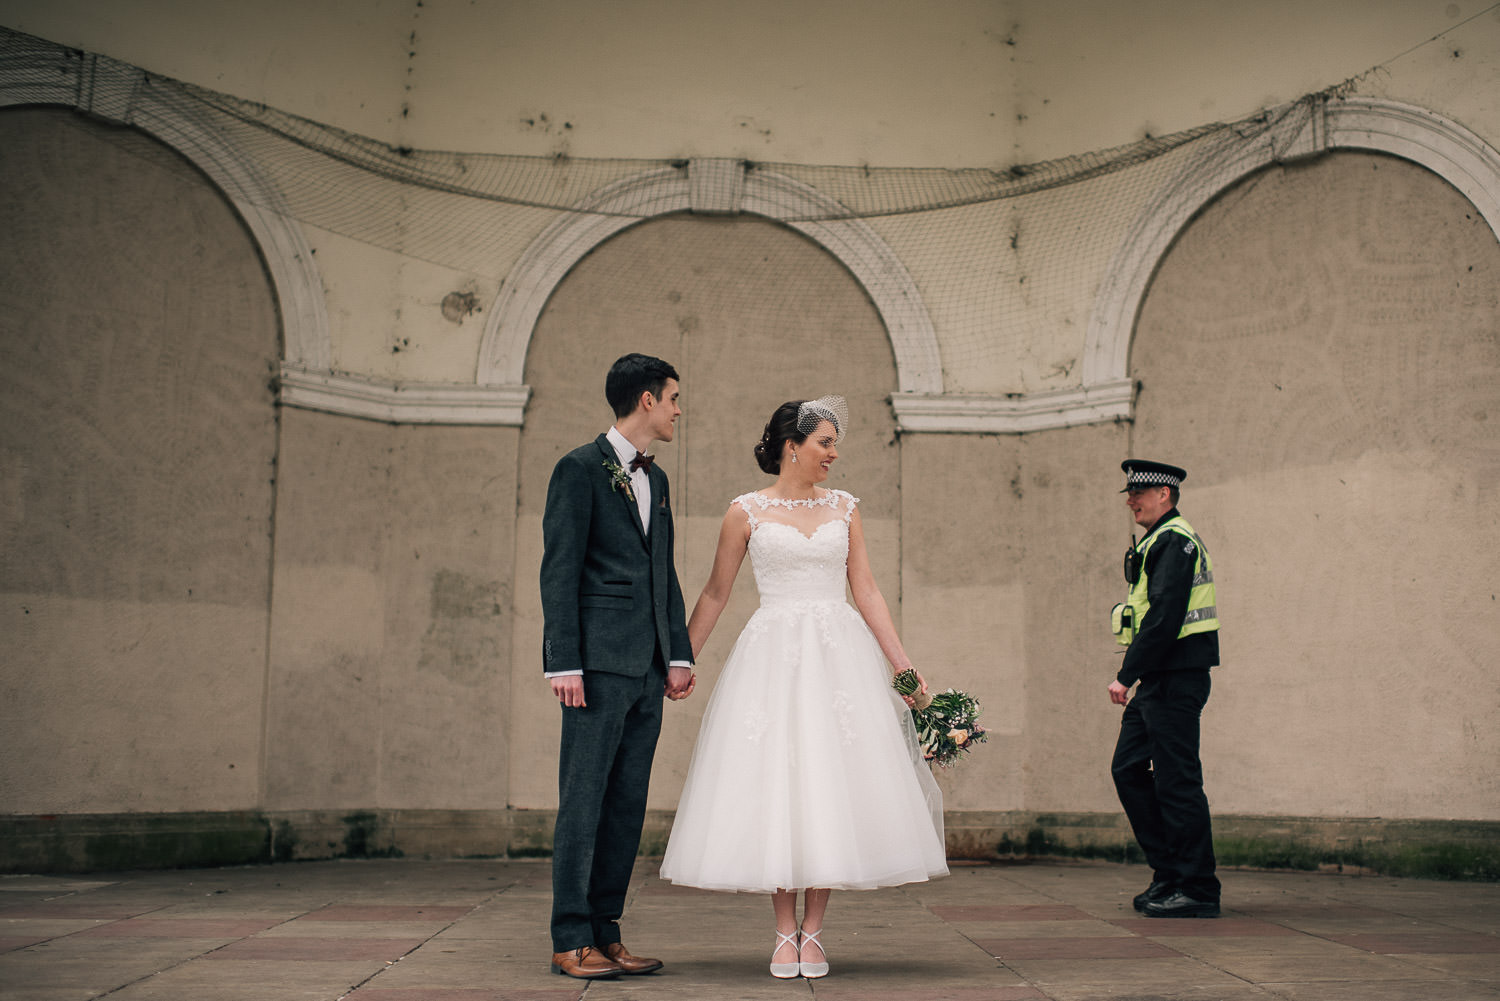 peckham wedding alternative by creative and alternative london wedding photographer the shannons photography